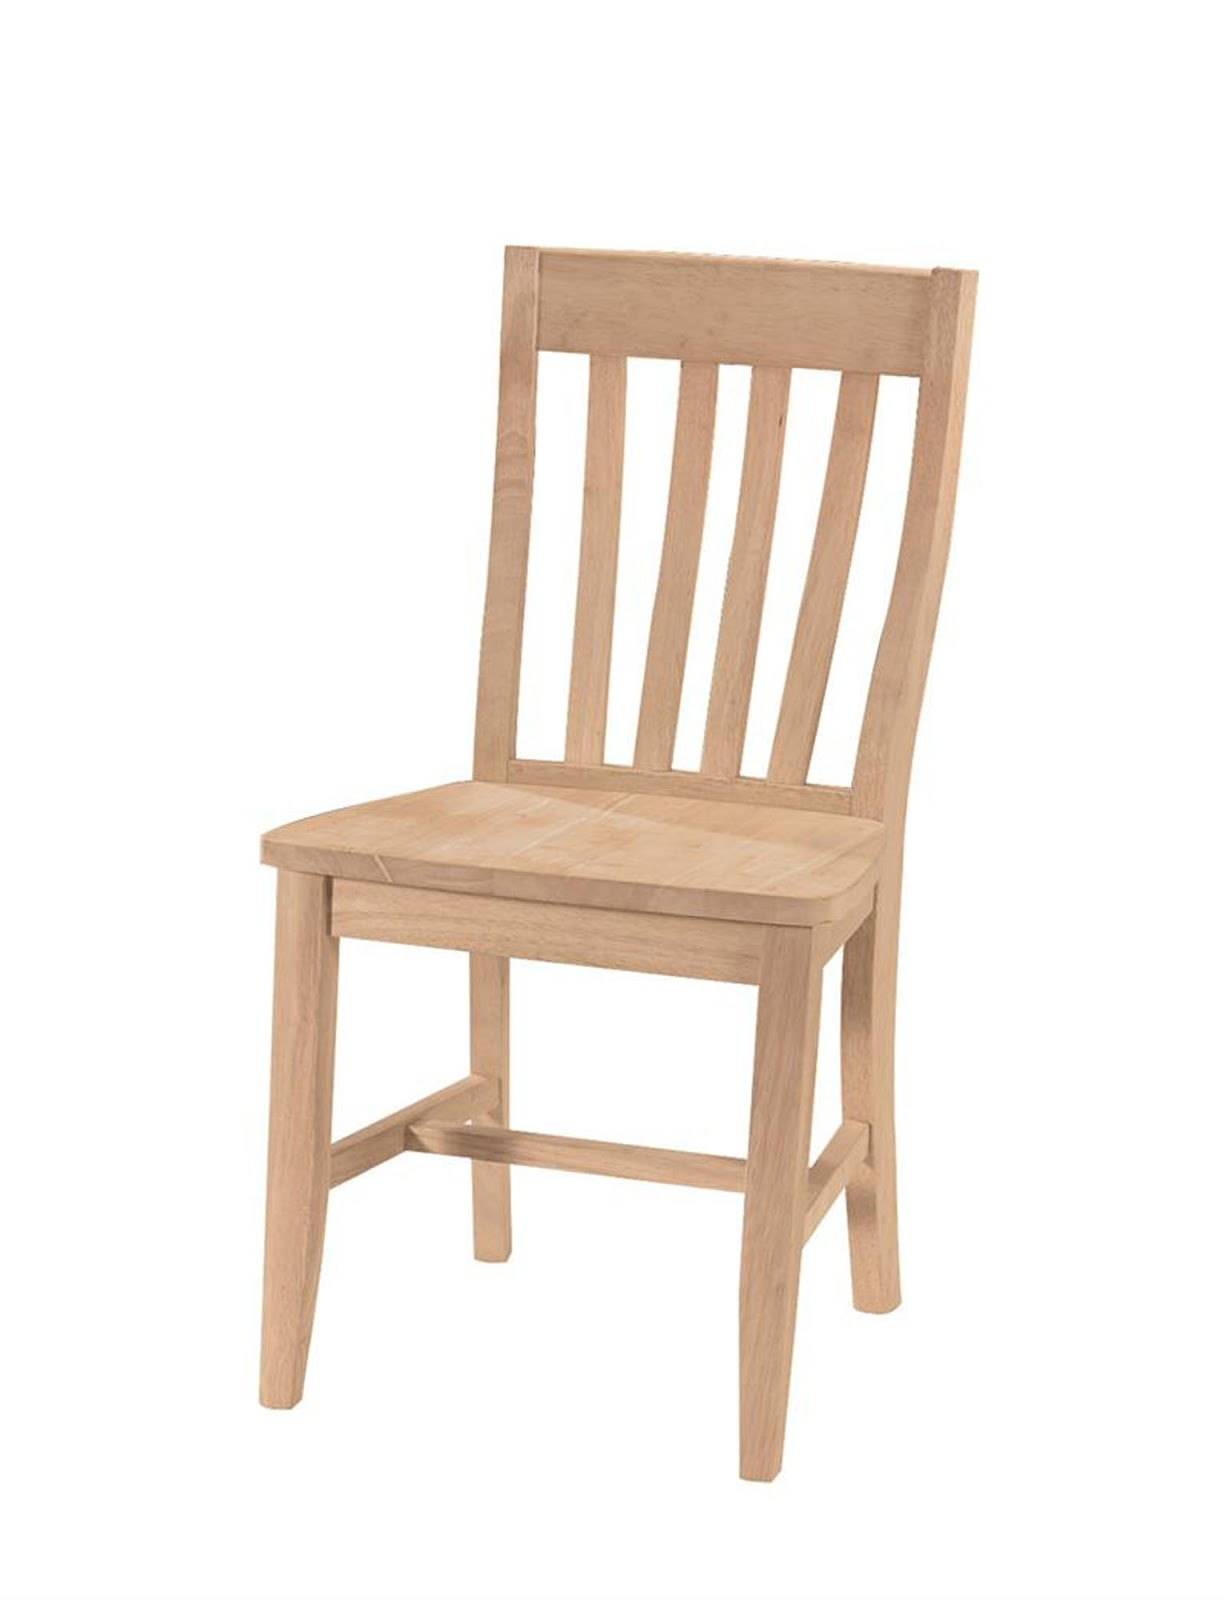 Unfinished Dining Chairs Lake Girl Paints Farmhouse Dining Wood Grain Stain And